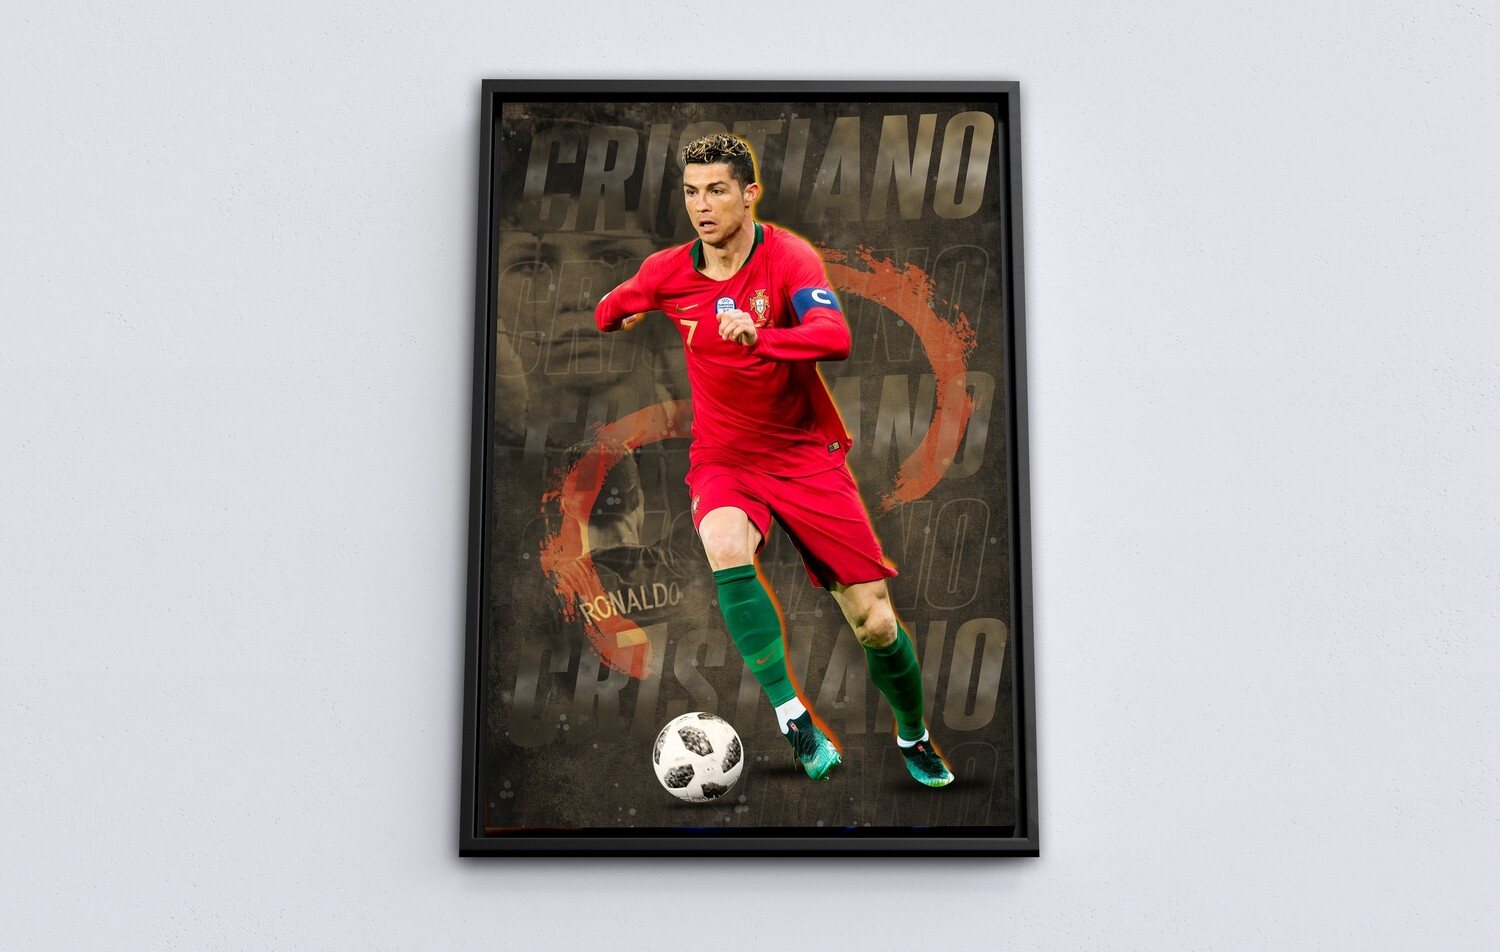 Cristiano Ronaldo Painting-Framed Sport Wallart - CR7 - Picture Printed on Acrylic Glass - Framed and Ready To Hang